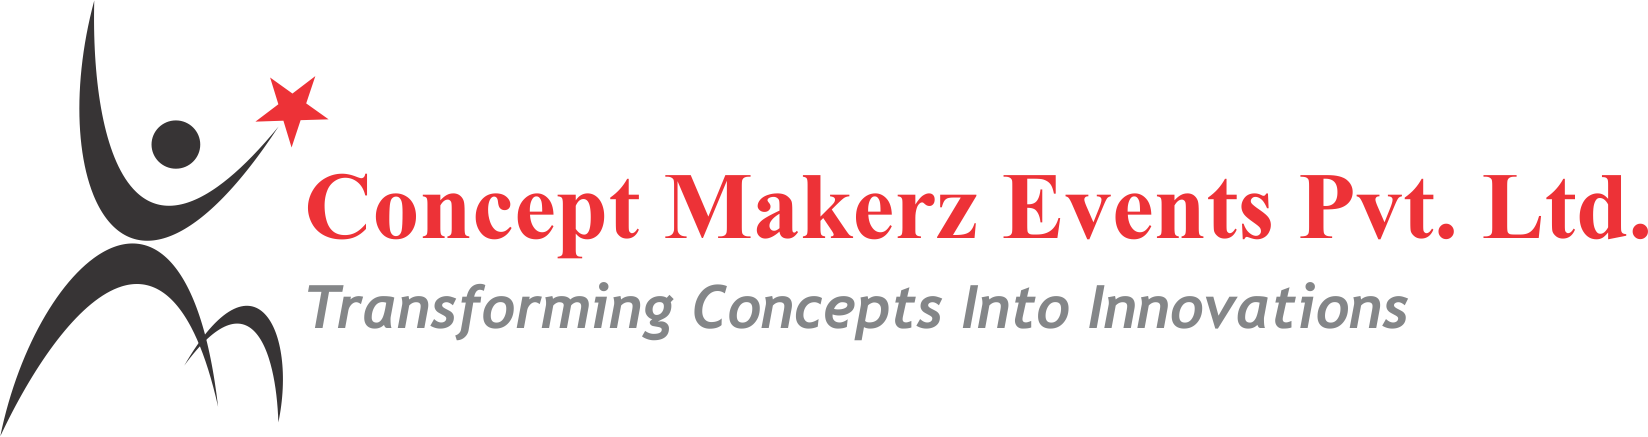 Concept Makerz Events